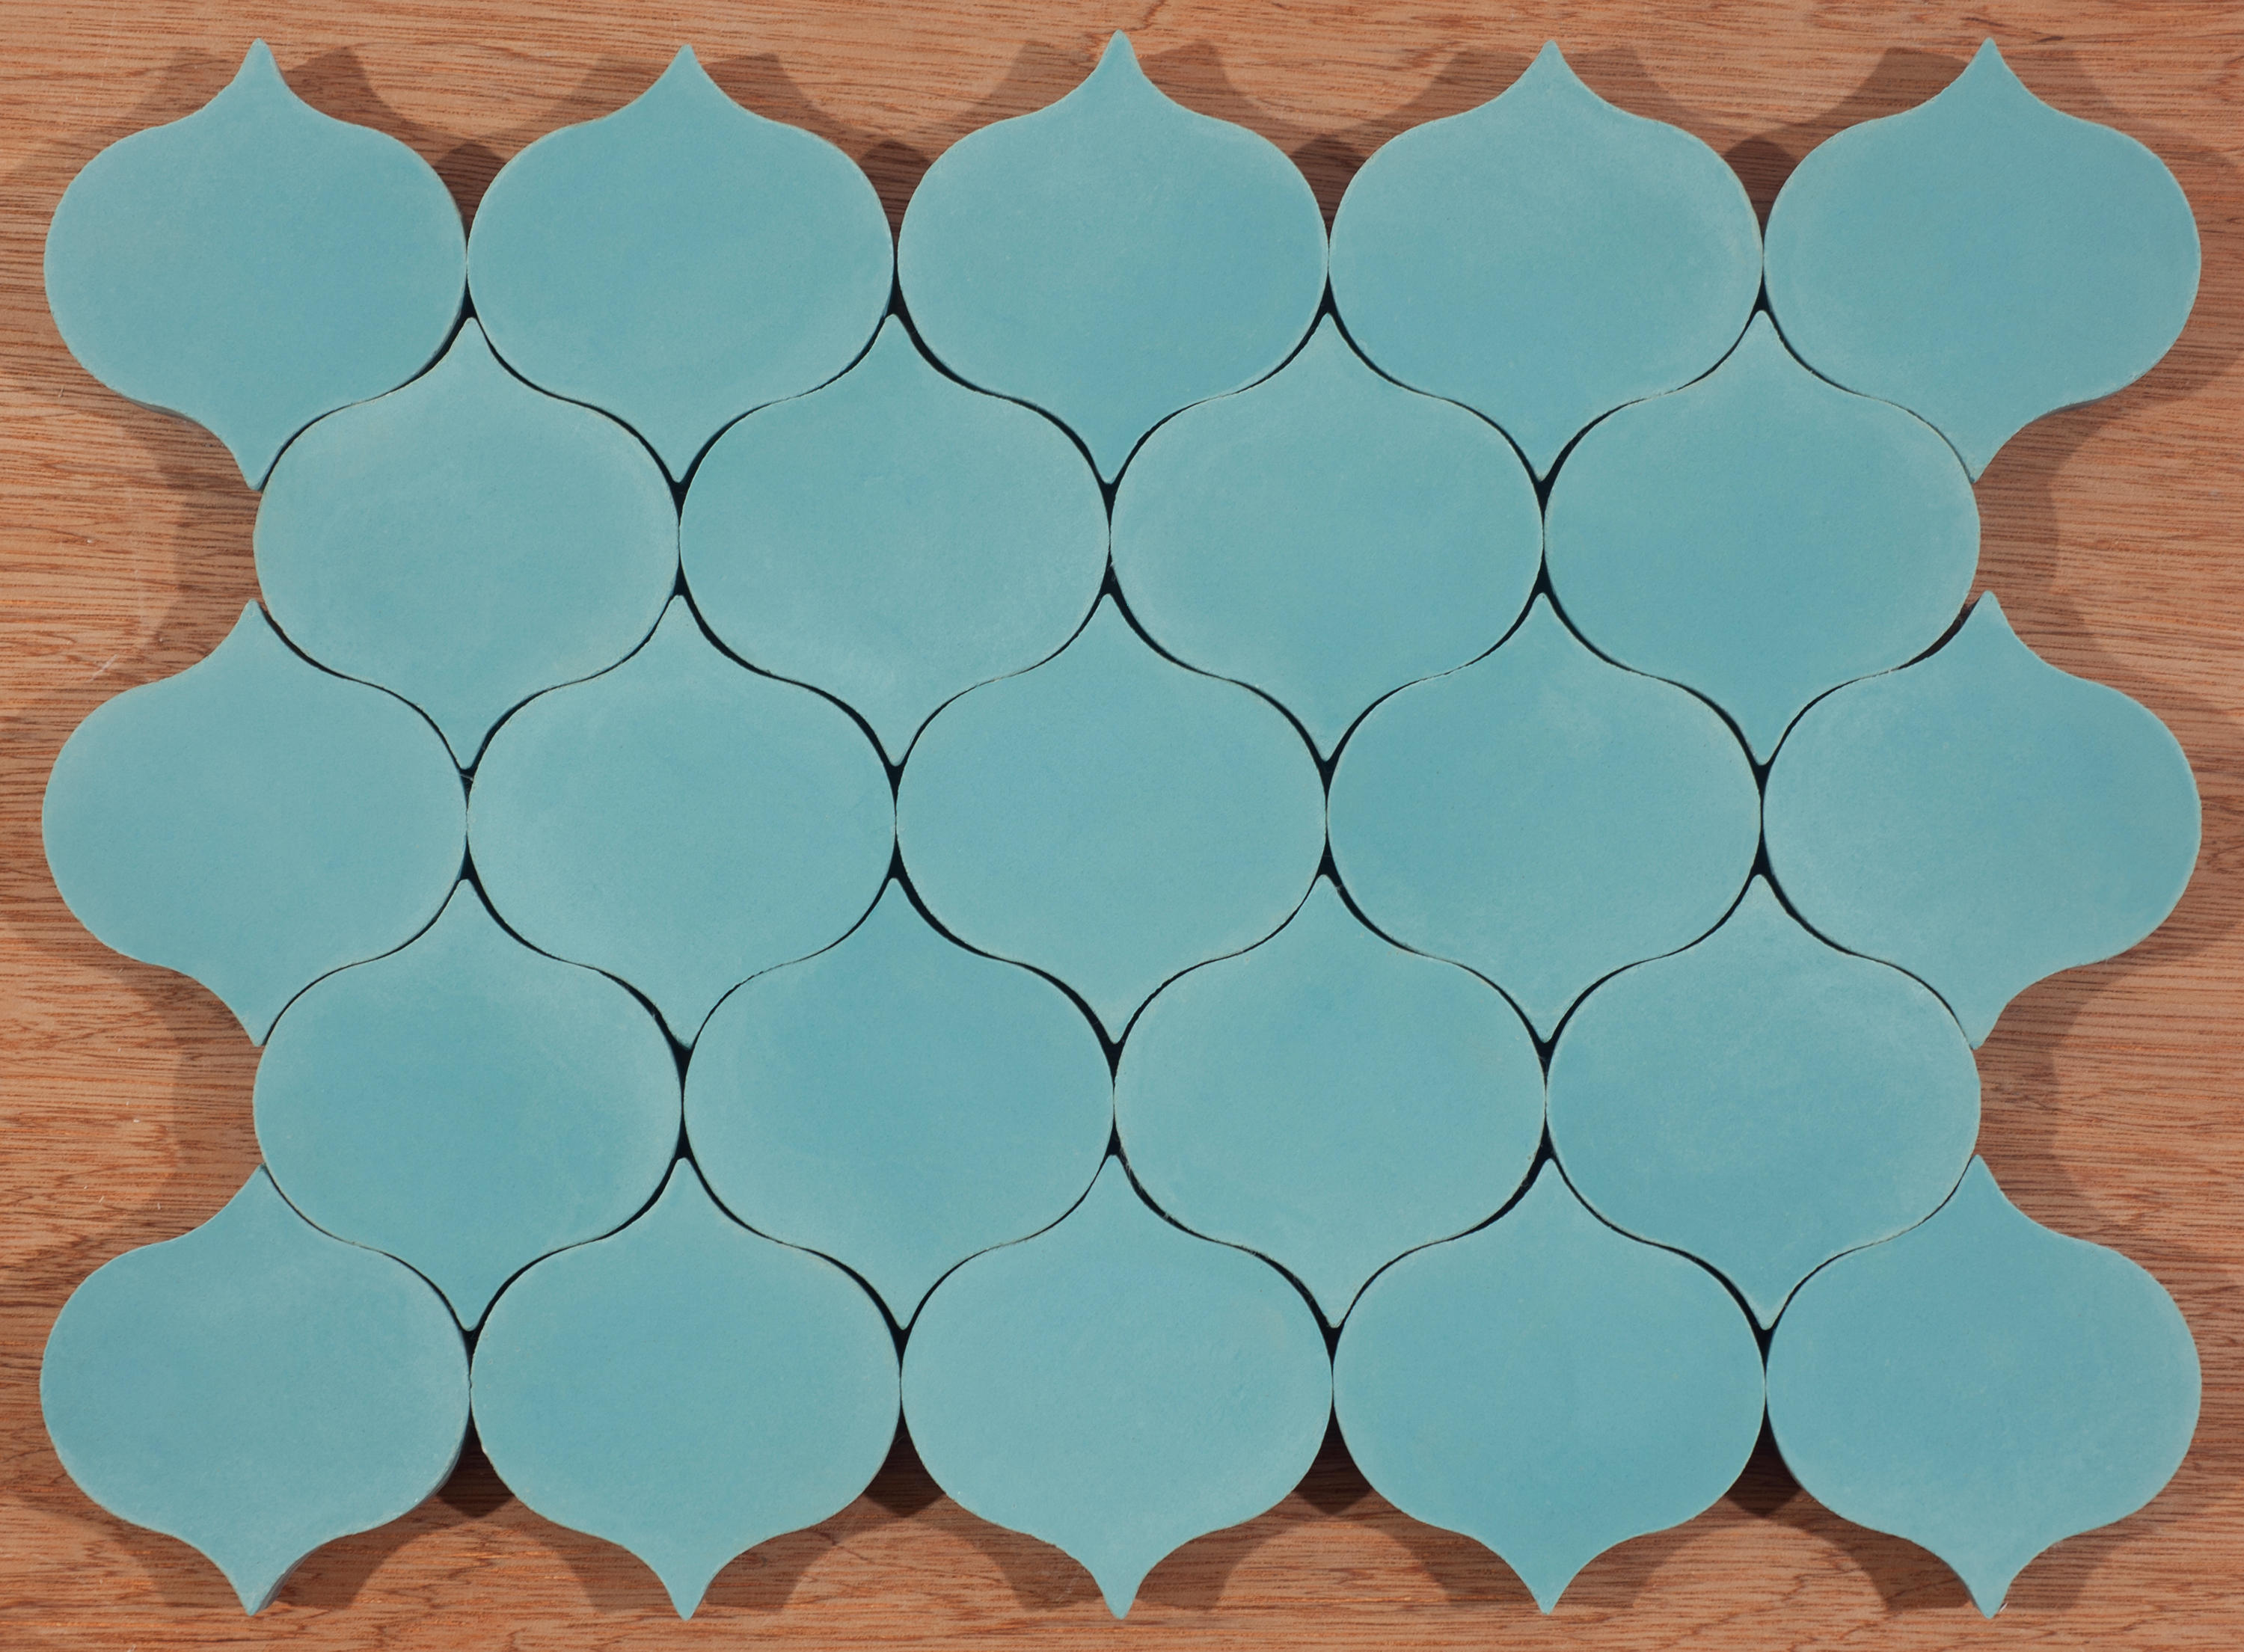 Droplet aqua floor tiles from granada tile architonic droplet aqua by granada tile floor tiles doublecrazyfo Gallery